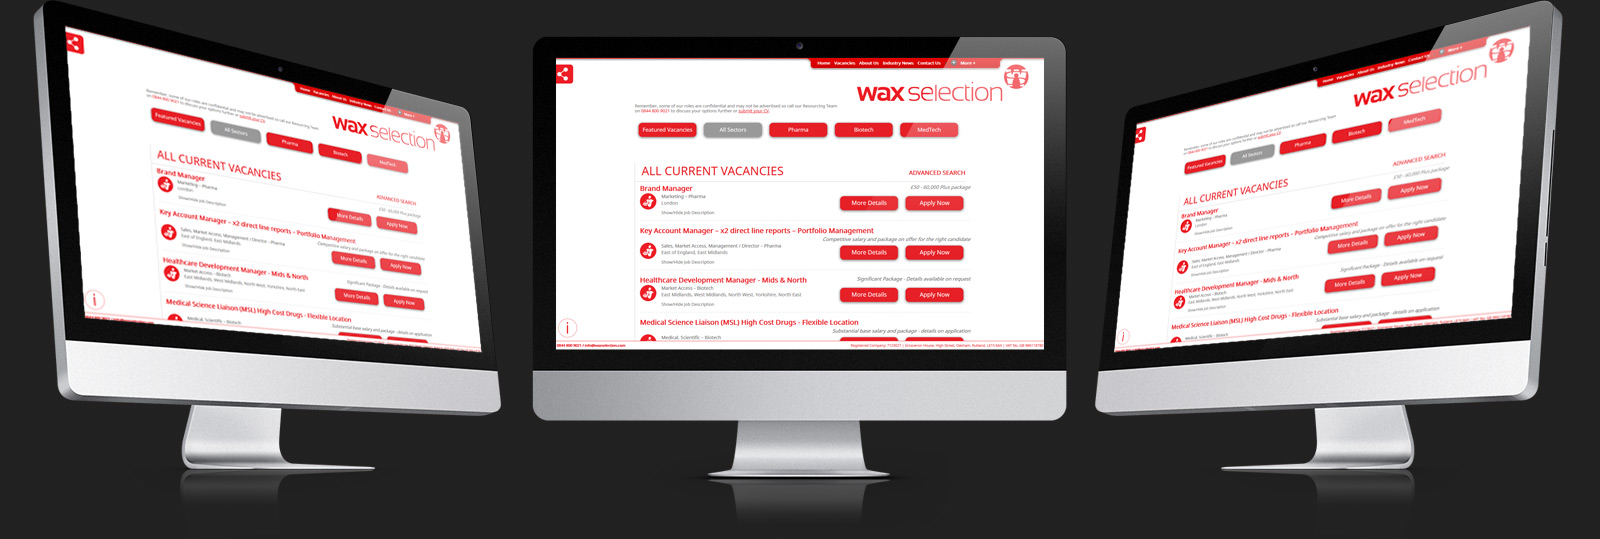 Stamford Web Design - Wax Selection